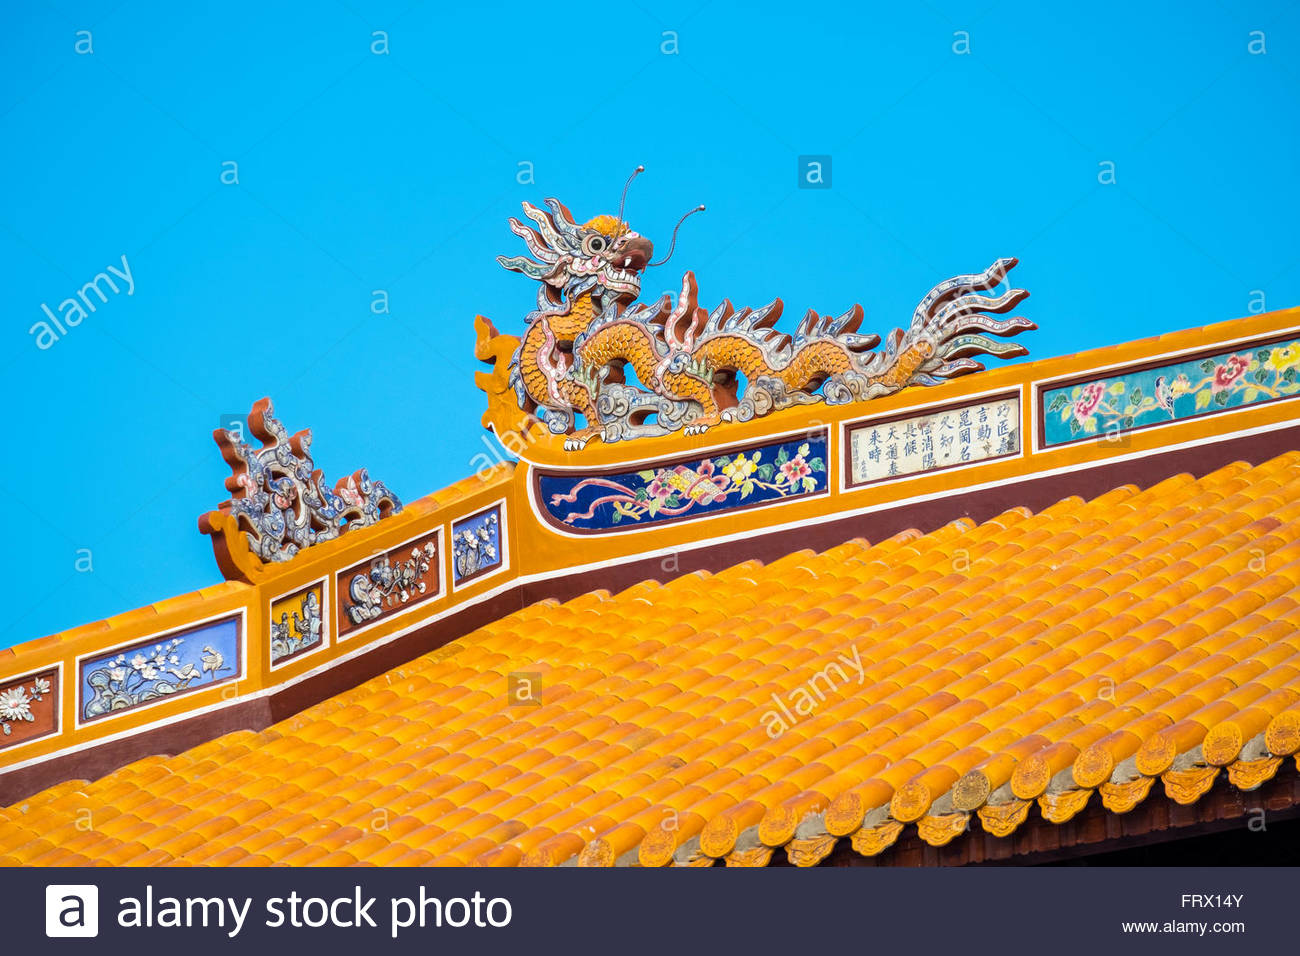 Detail of Noon Gate (Ngo Mon), the main gate to the Imperial City, Hue, Thua Thien-Hue Province, Vietnam - Stock Image